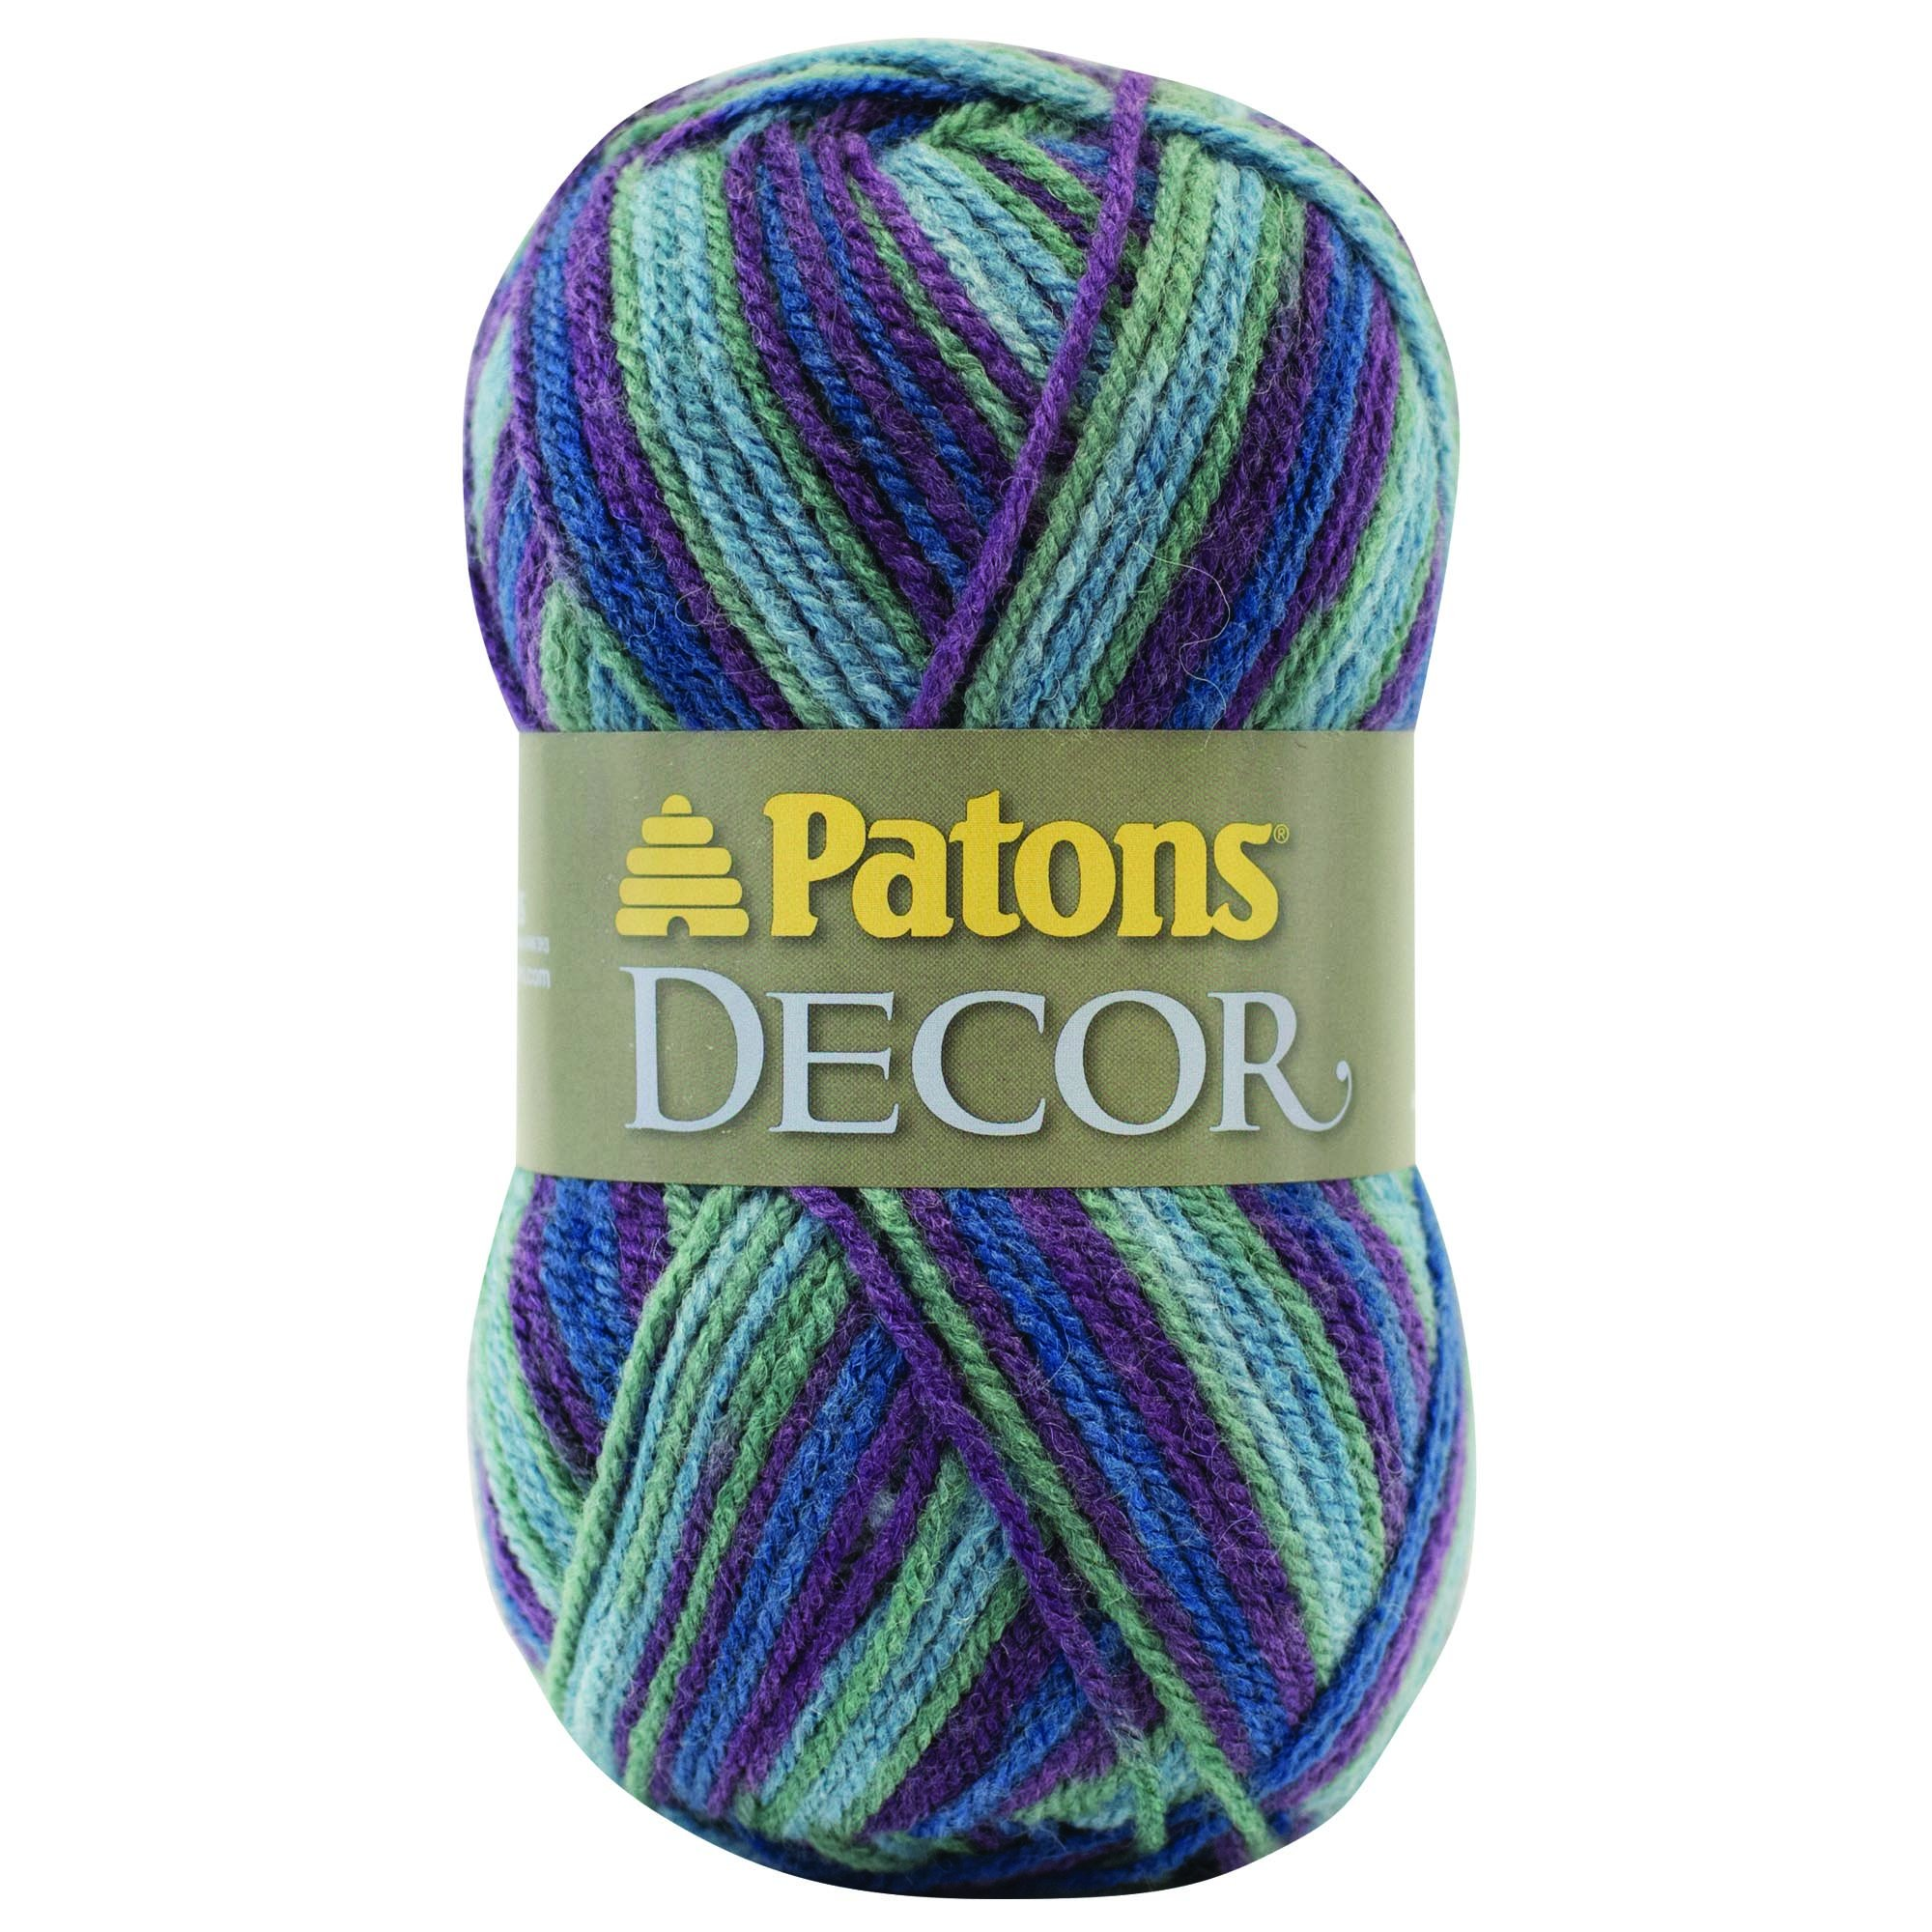 Patons  Decor Yarn - (4) Medium Worsted Gauge  - 3.5oz -  Mountain Top  -   For Crochet, Knitting & Crafting